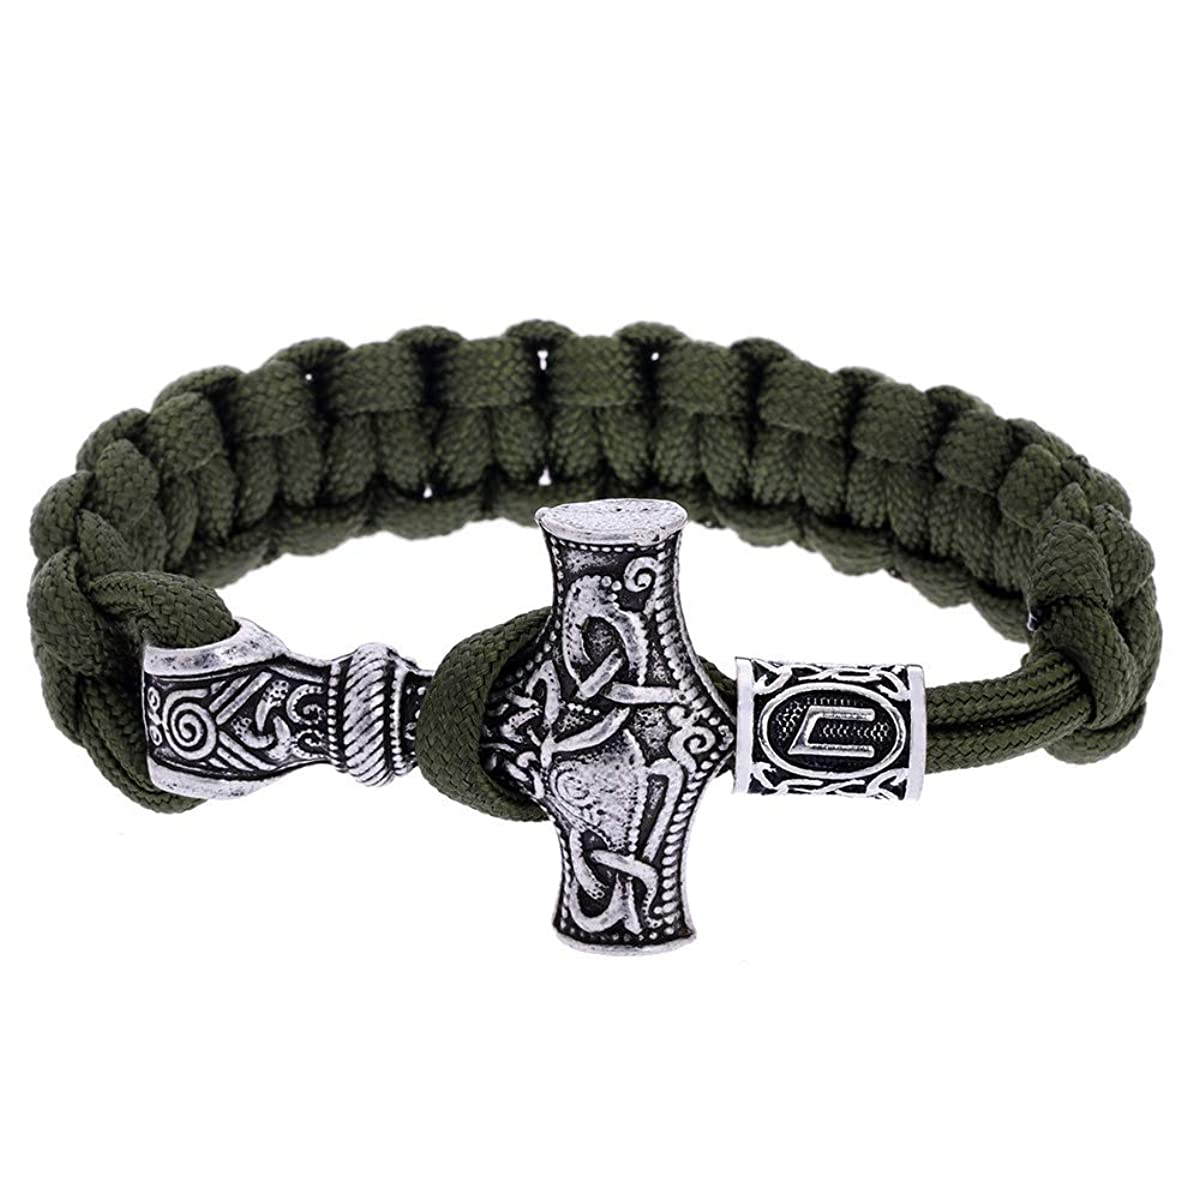 LEEFISH Viking Runes Mjolnir Bracelet, Norse Beard Beads Bangle, Antique Green Handmade Bracelet Thor's Hammer Jelwerly Outdoor for Men and Women